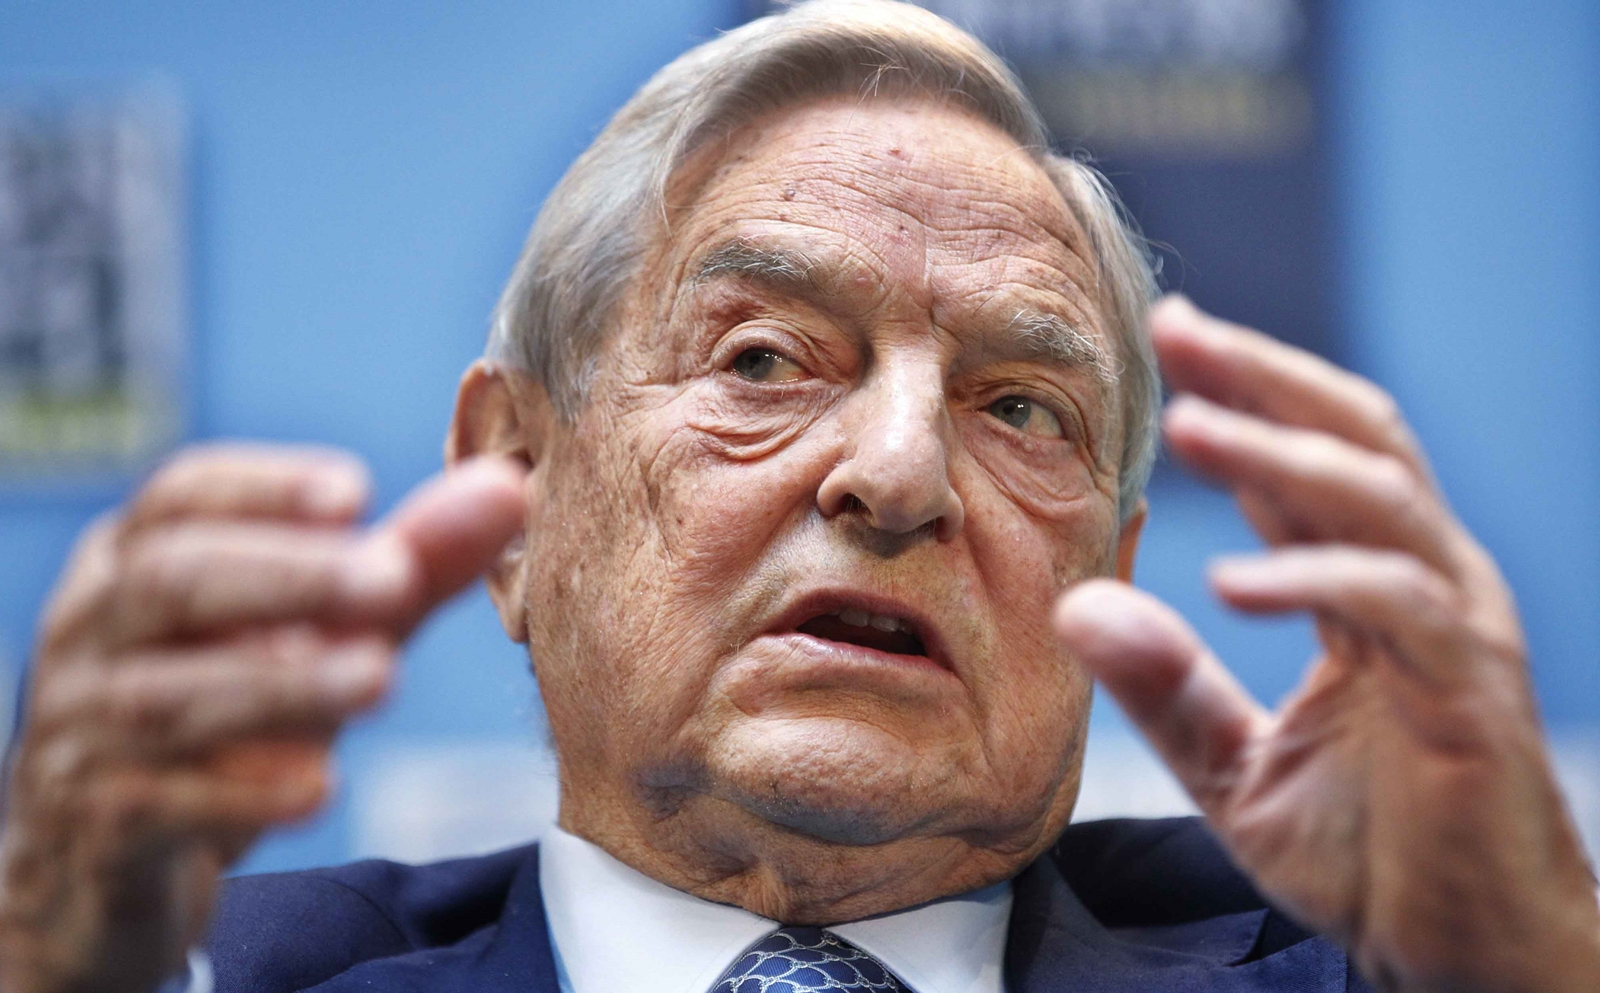 """George Soros, chairman, Soros Fund Management, speaks during a forum """"Charting A New Growth Path for the Euro Zone"""" at the IMF/World Bank annual meetings in Washington, Saturday, Sept. 24, 2011.  (AP Photo Manuel Balce Ceneta)"""